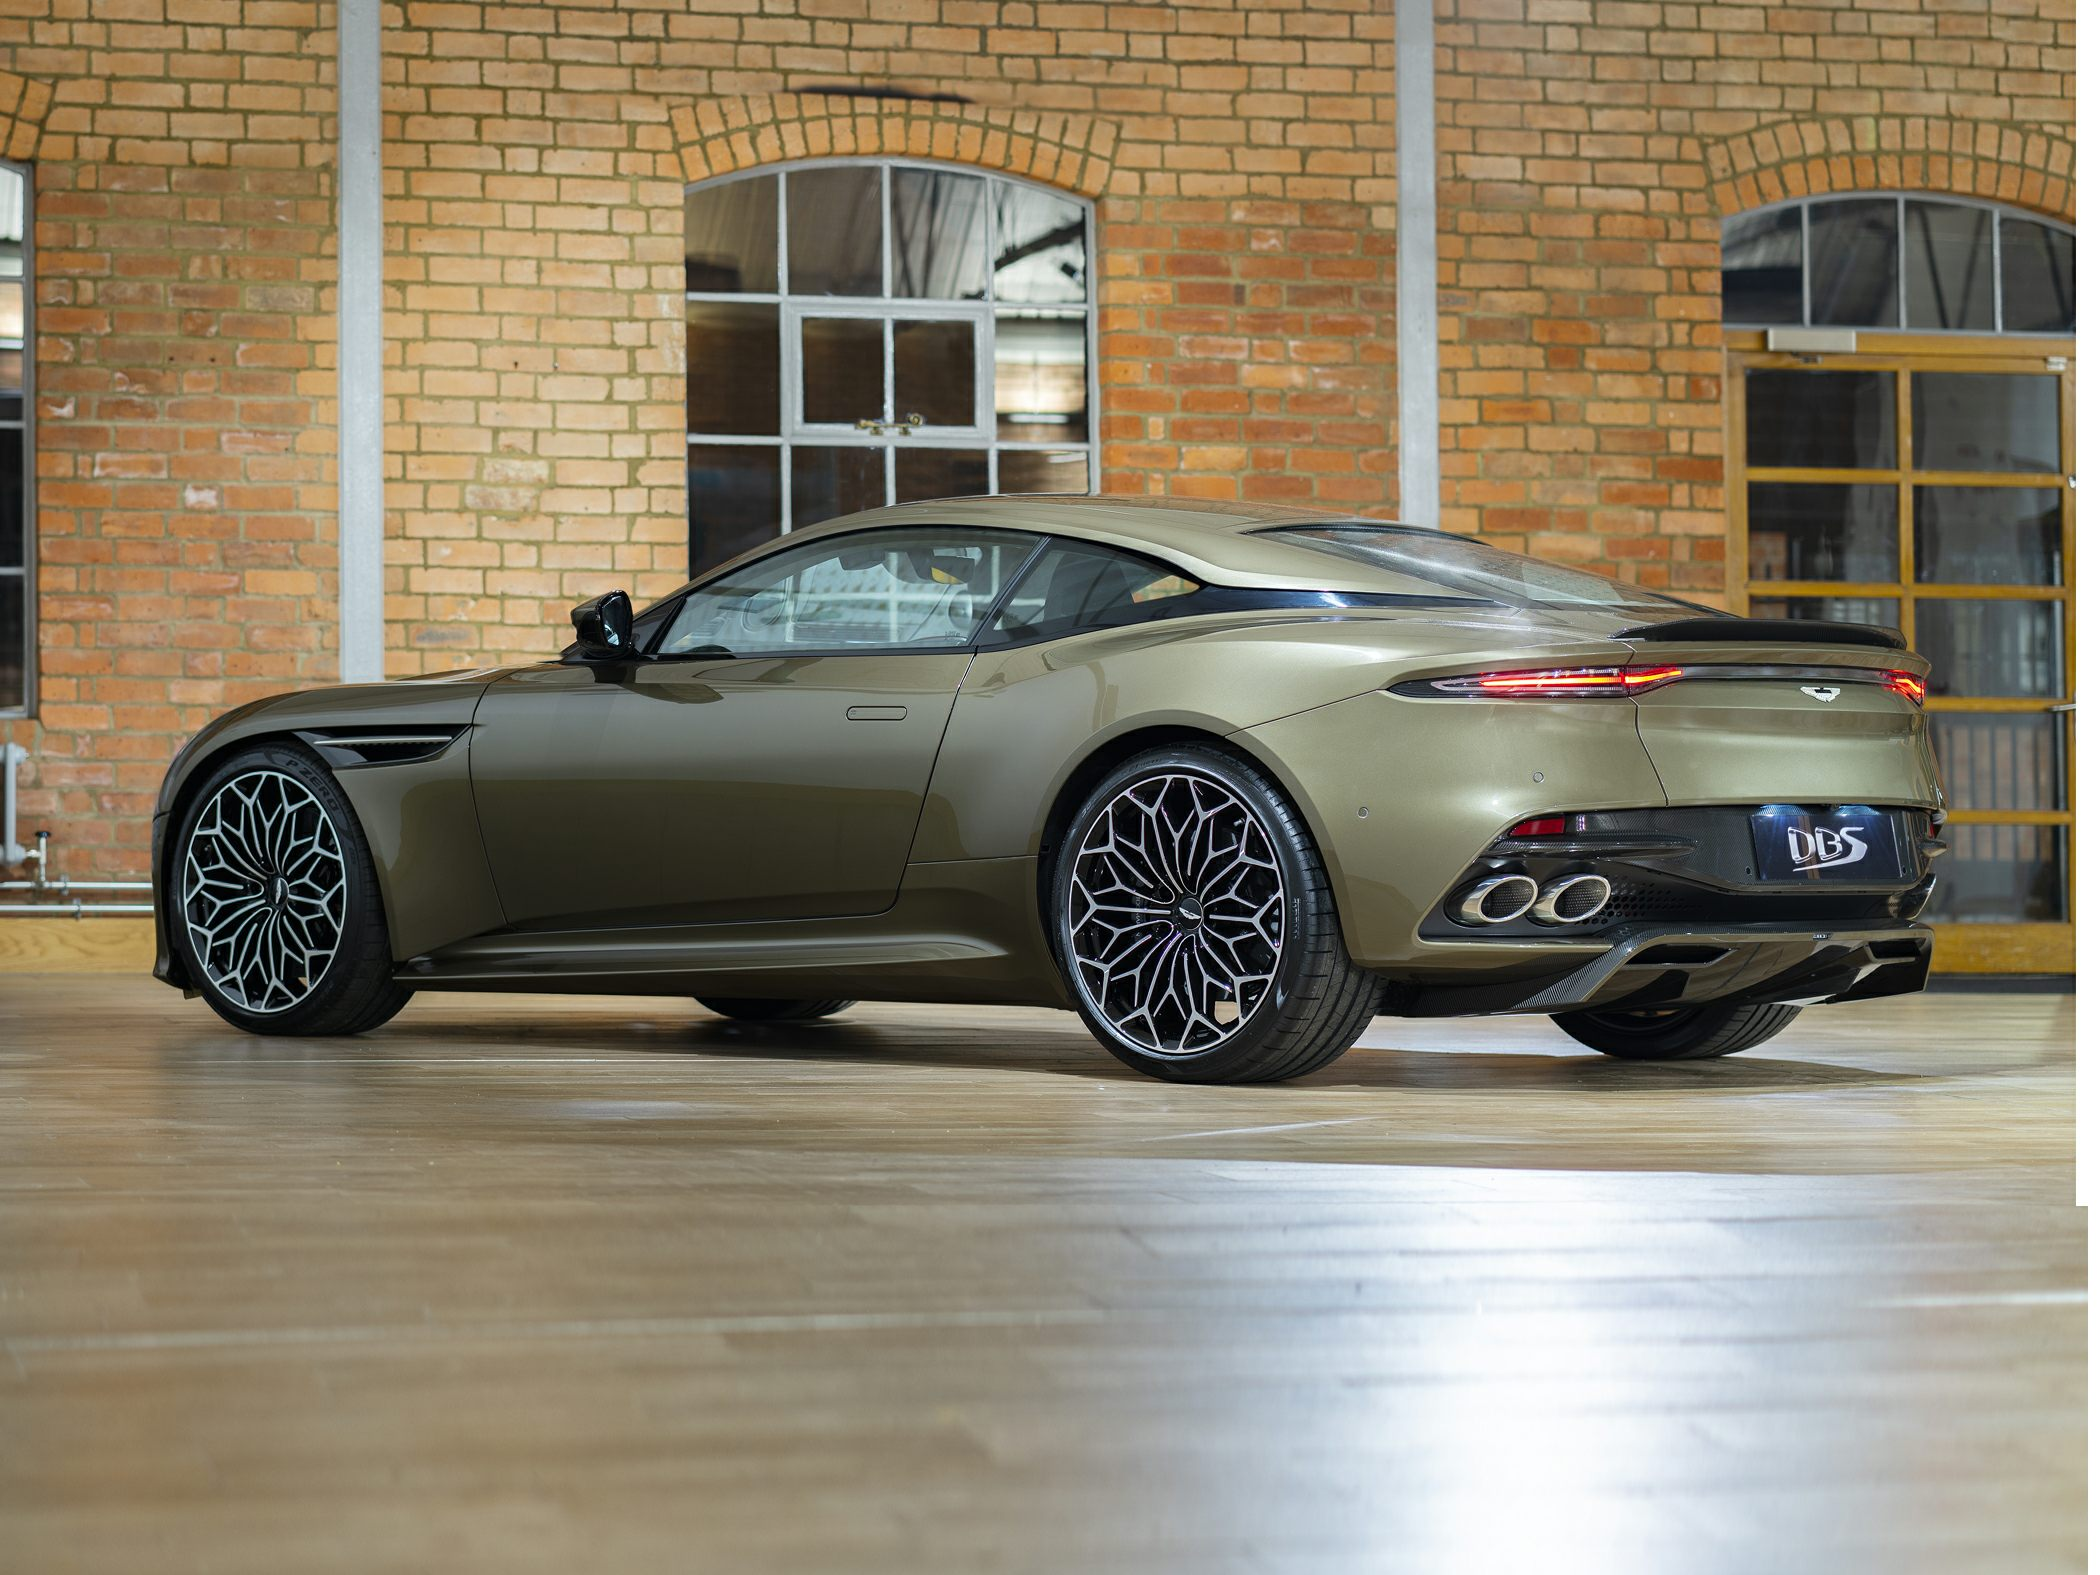 2020 Aston Martin Dbs Superleggera Ohmss Edition 2dr Coupe For Sale